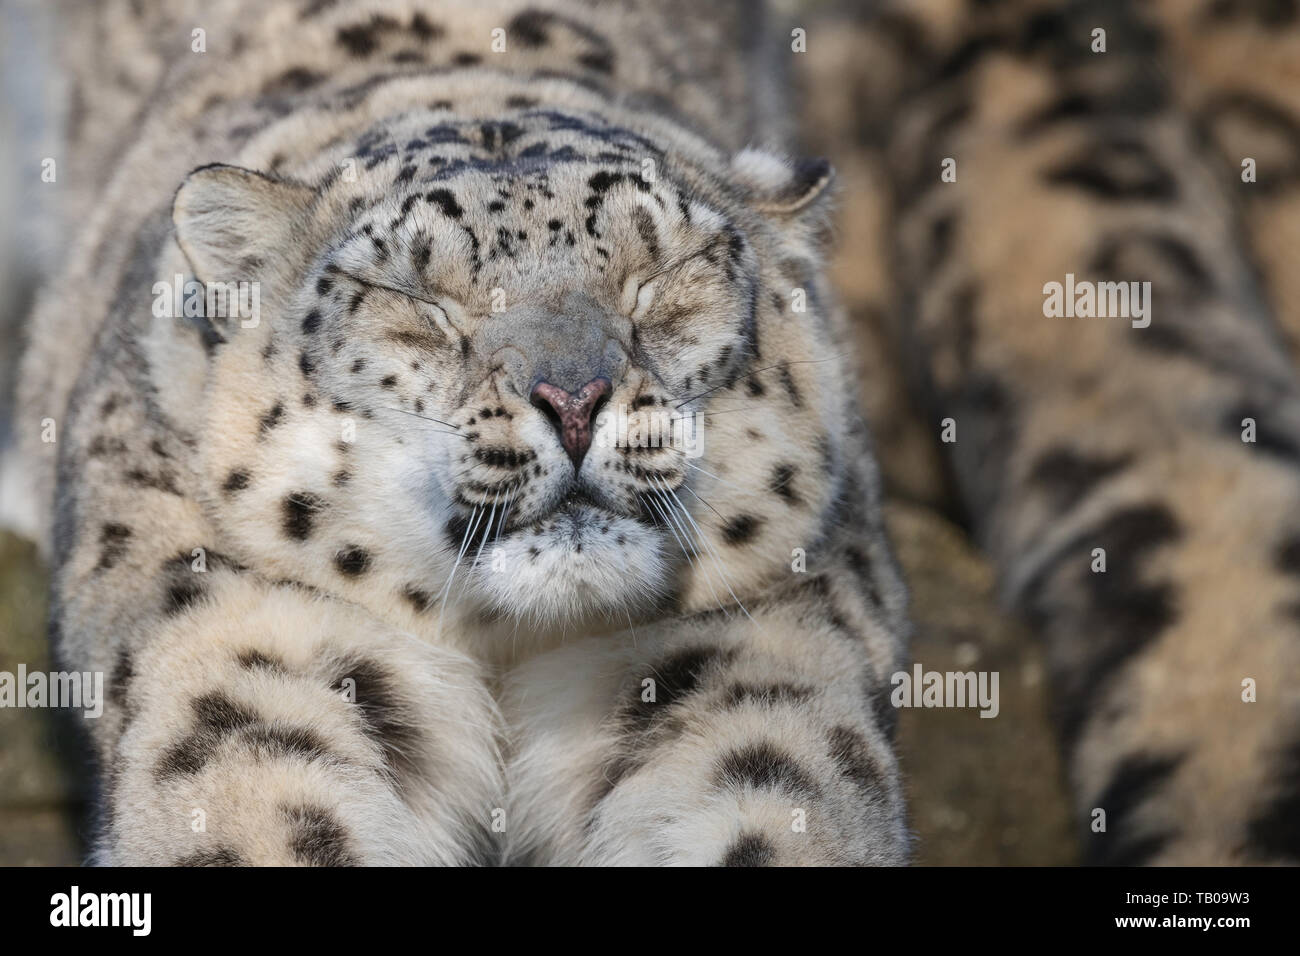 Snow Leopard Stretching next to partner Stock Photo